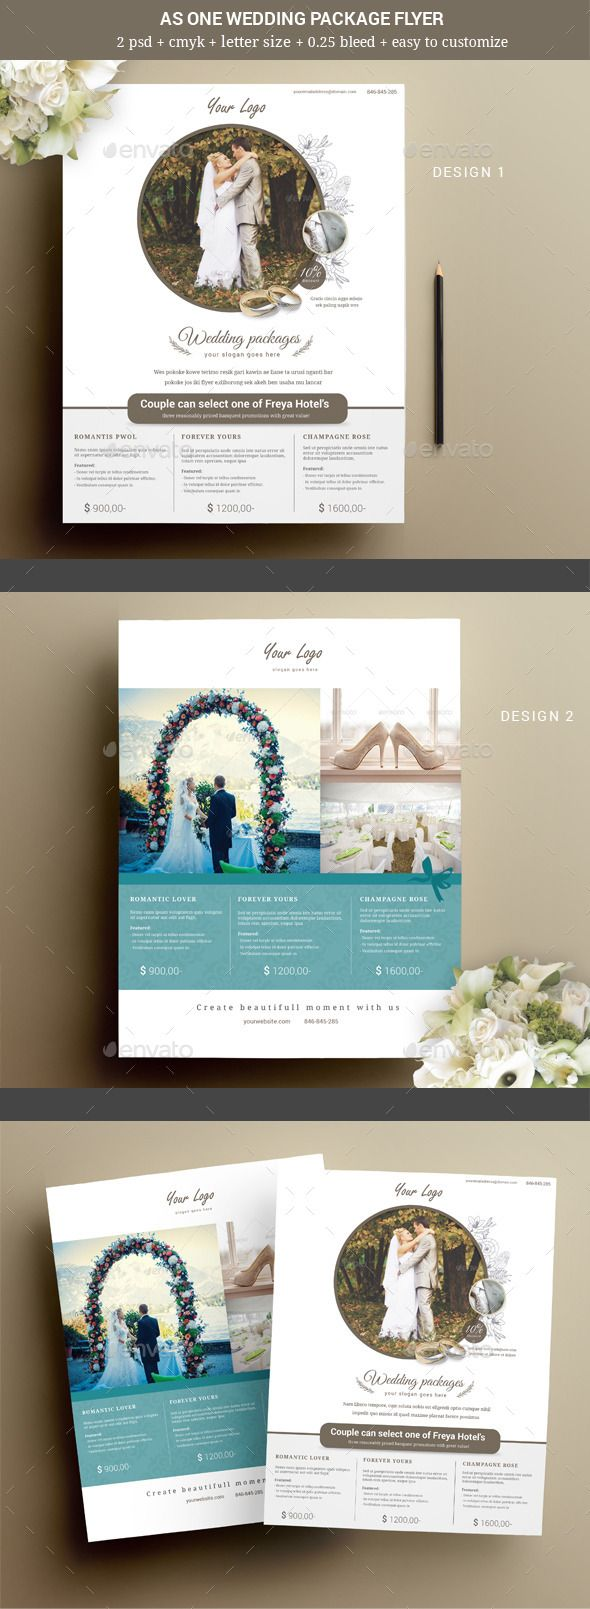 wedding card design software for android%0A As One Wedding Event Flyer